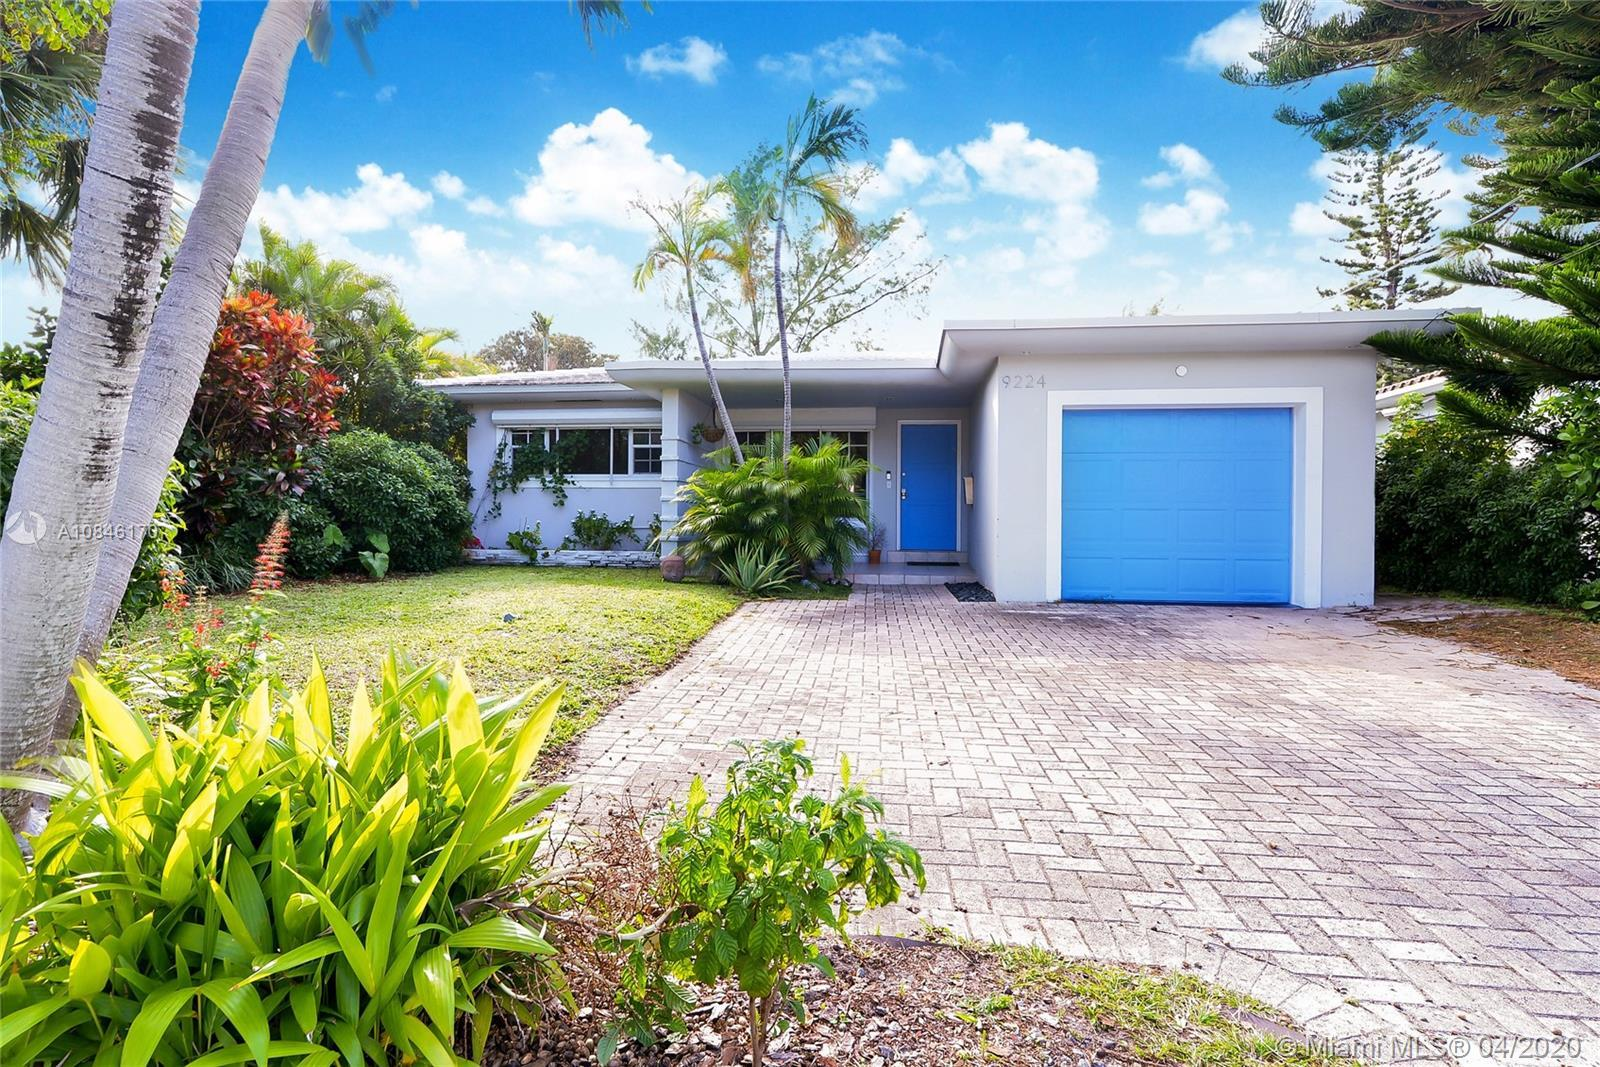 Stylishly renovated and spacious modern house with 3 large bedrooms, 2 bathrooms, a Florida room, an